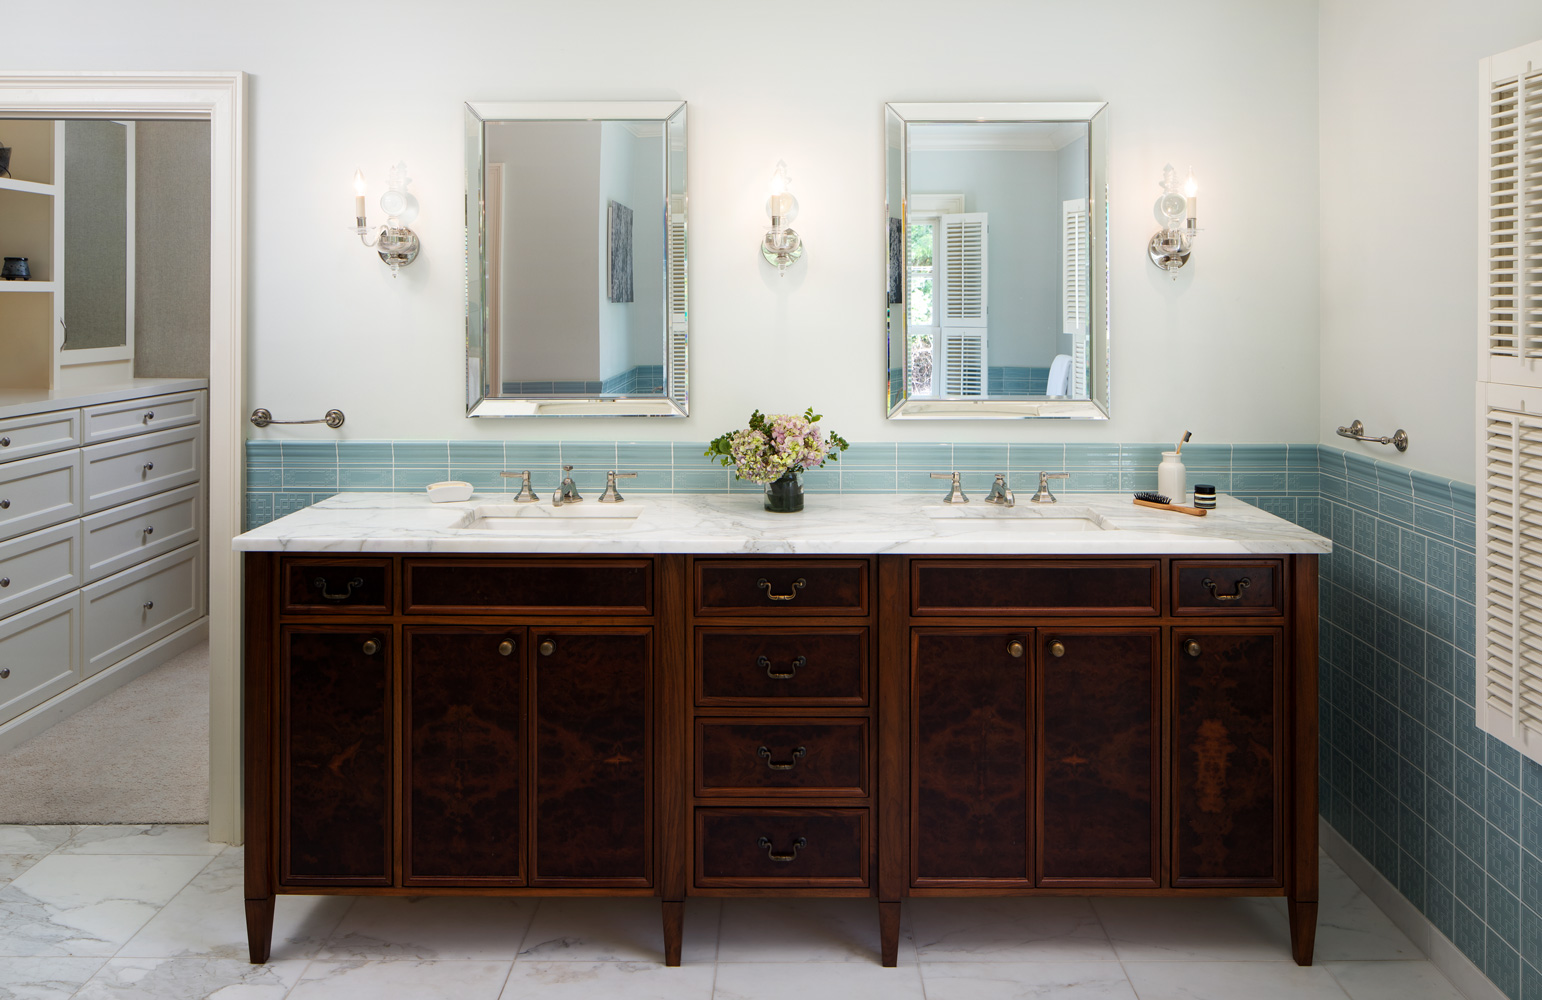 lake-oswego-double-vanity-design-remodel.jpg